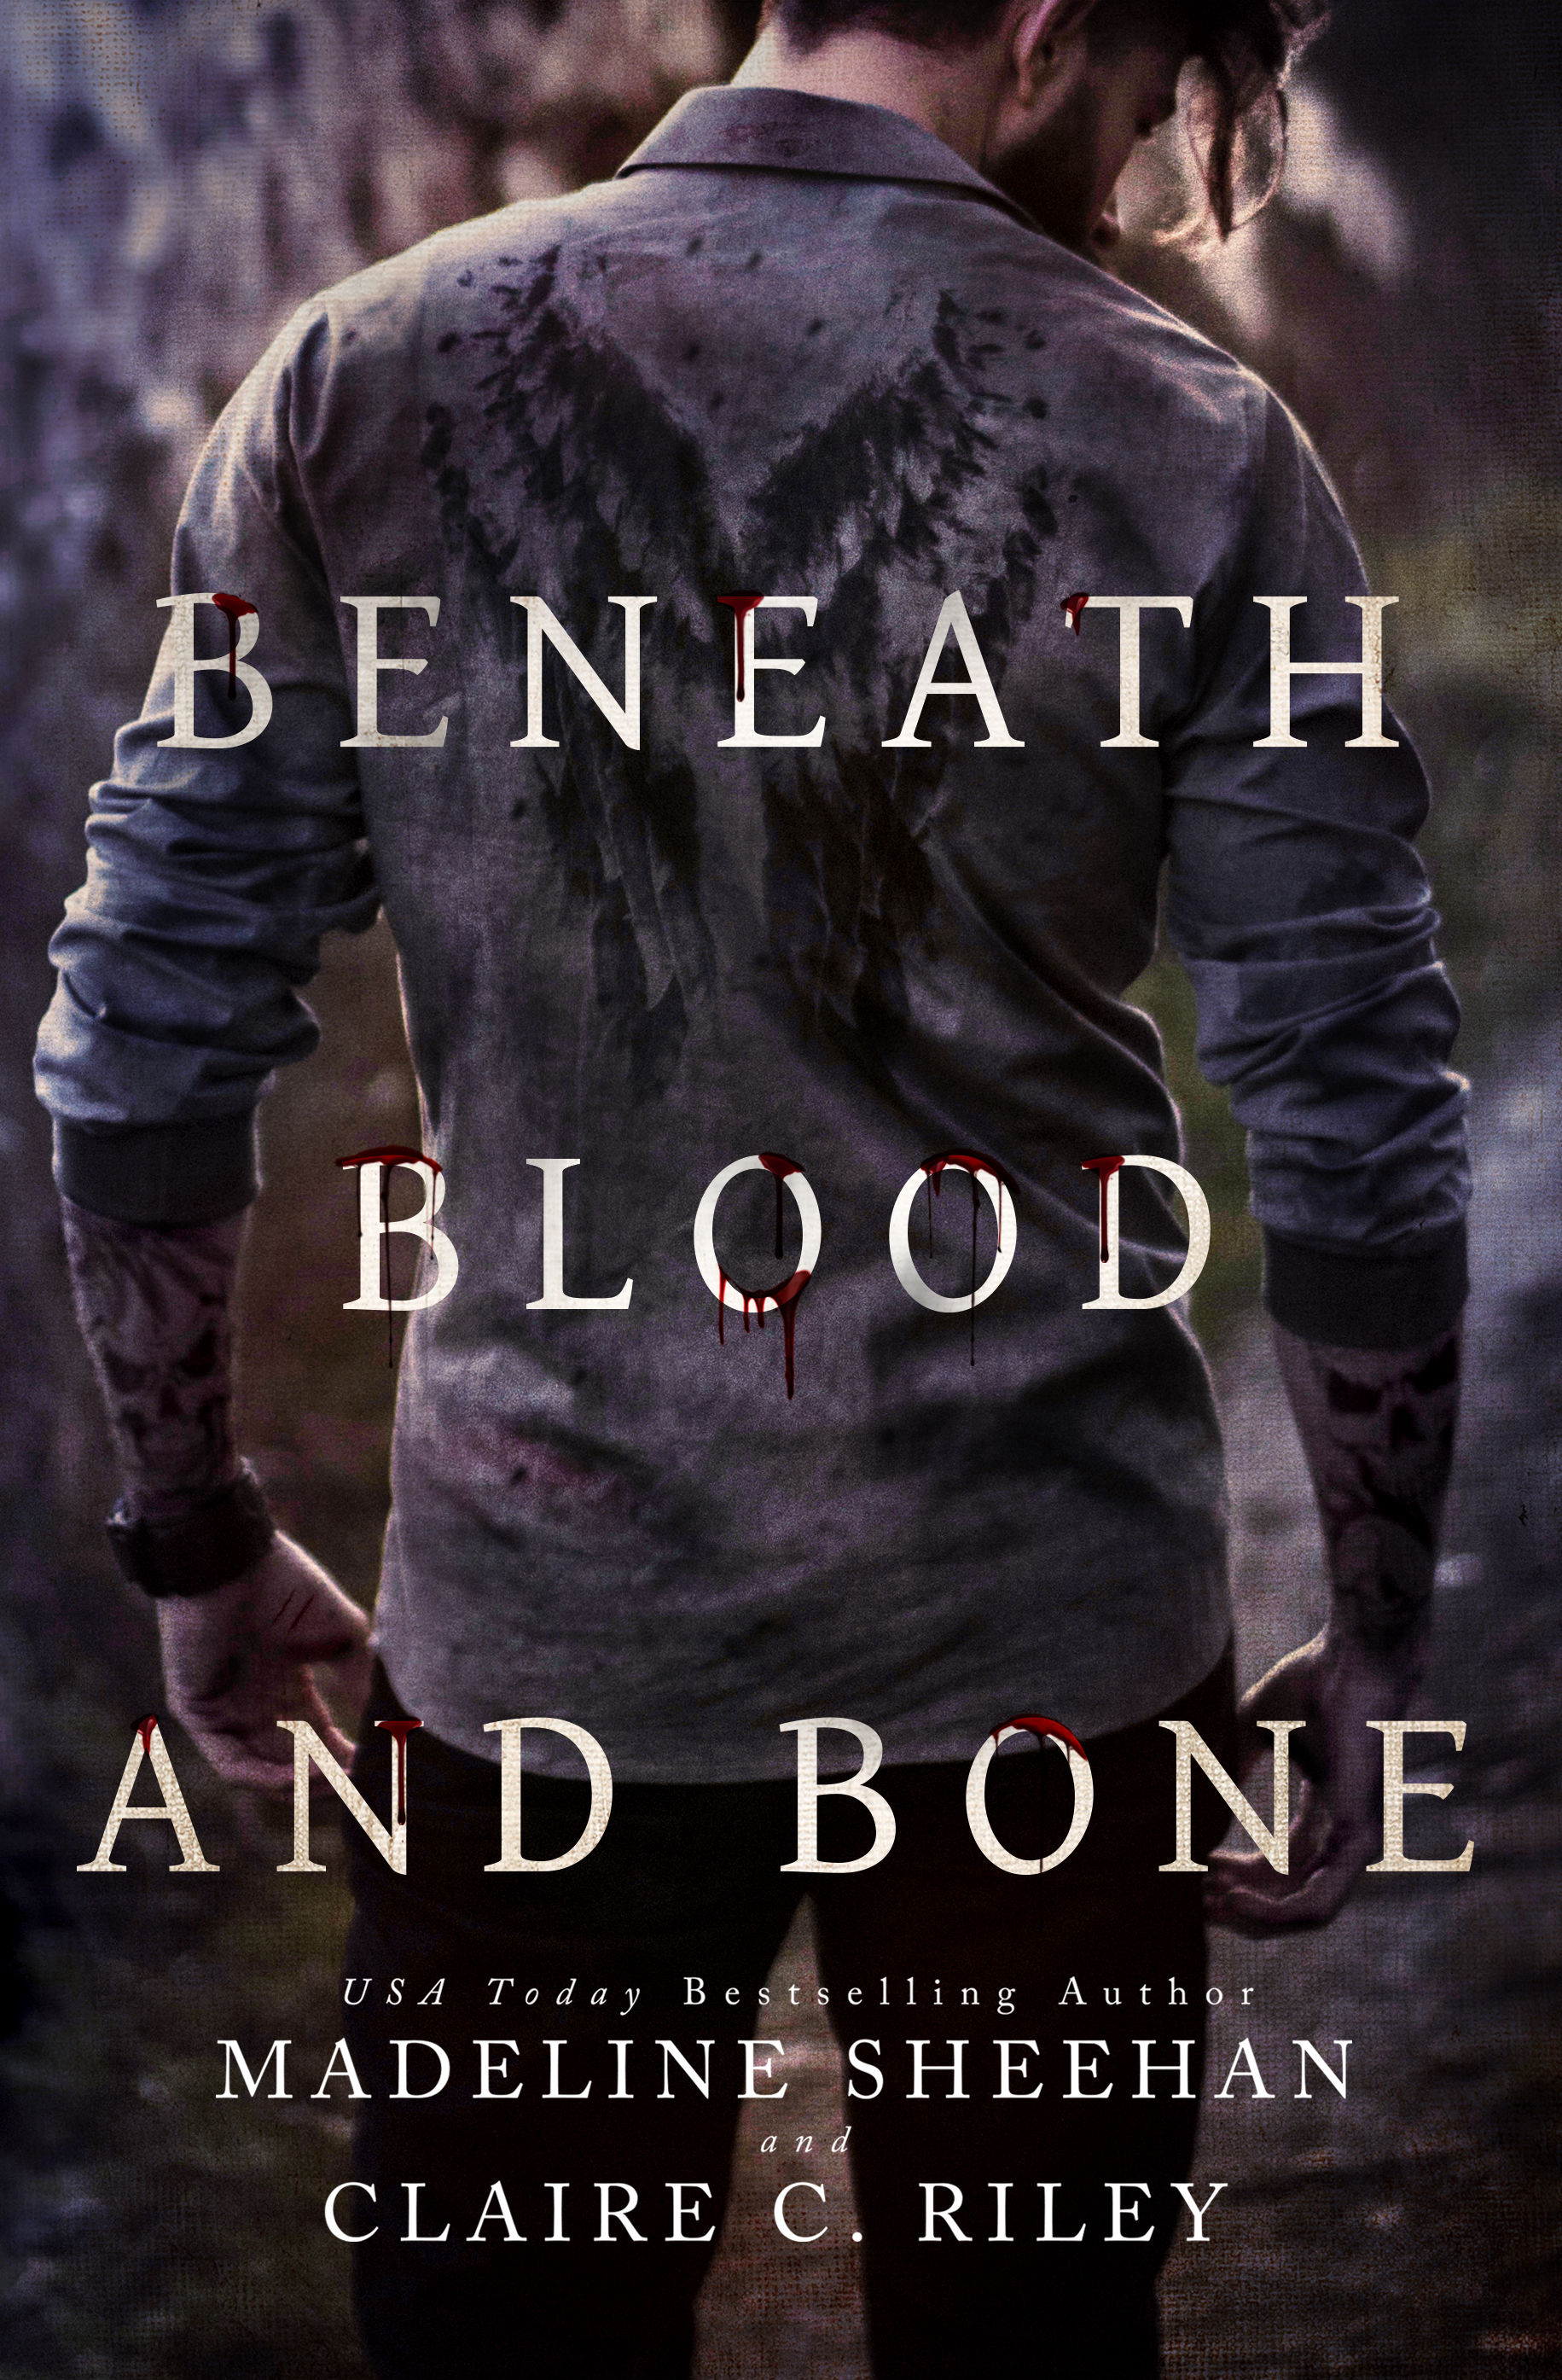 Release Day + Review: Beneath Blood and Bone by Claire C. Riley and Madeline Sheehand